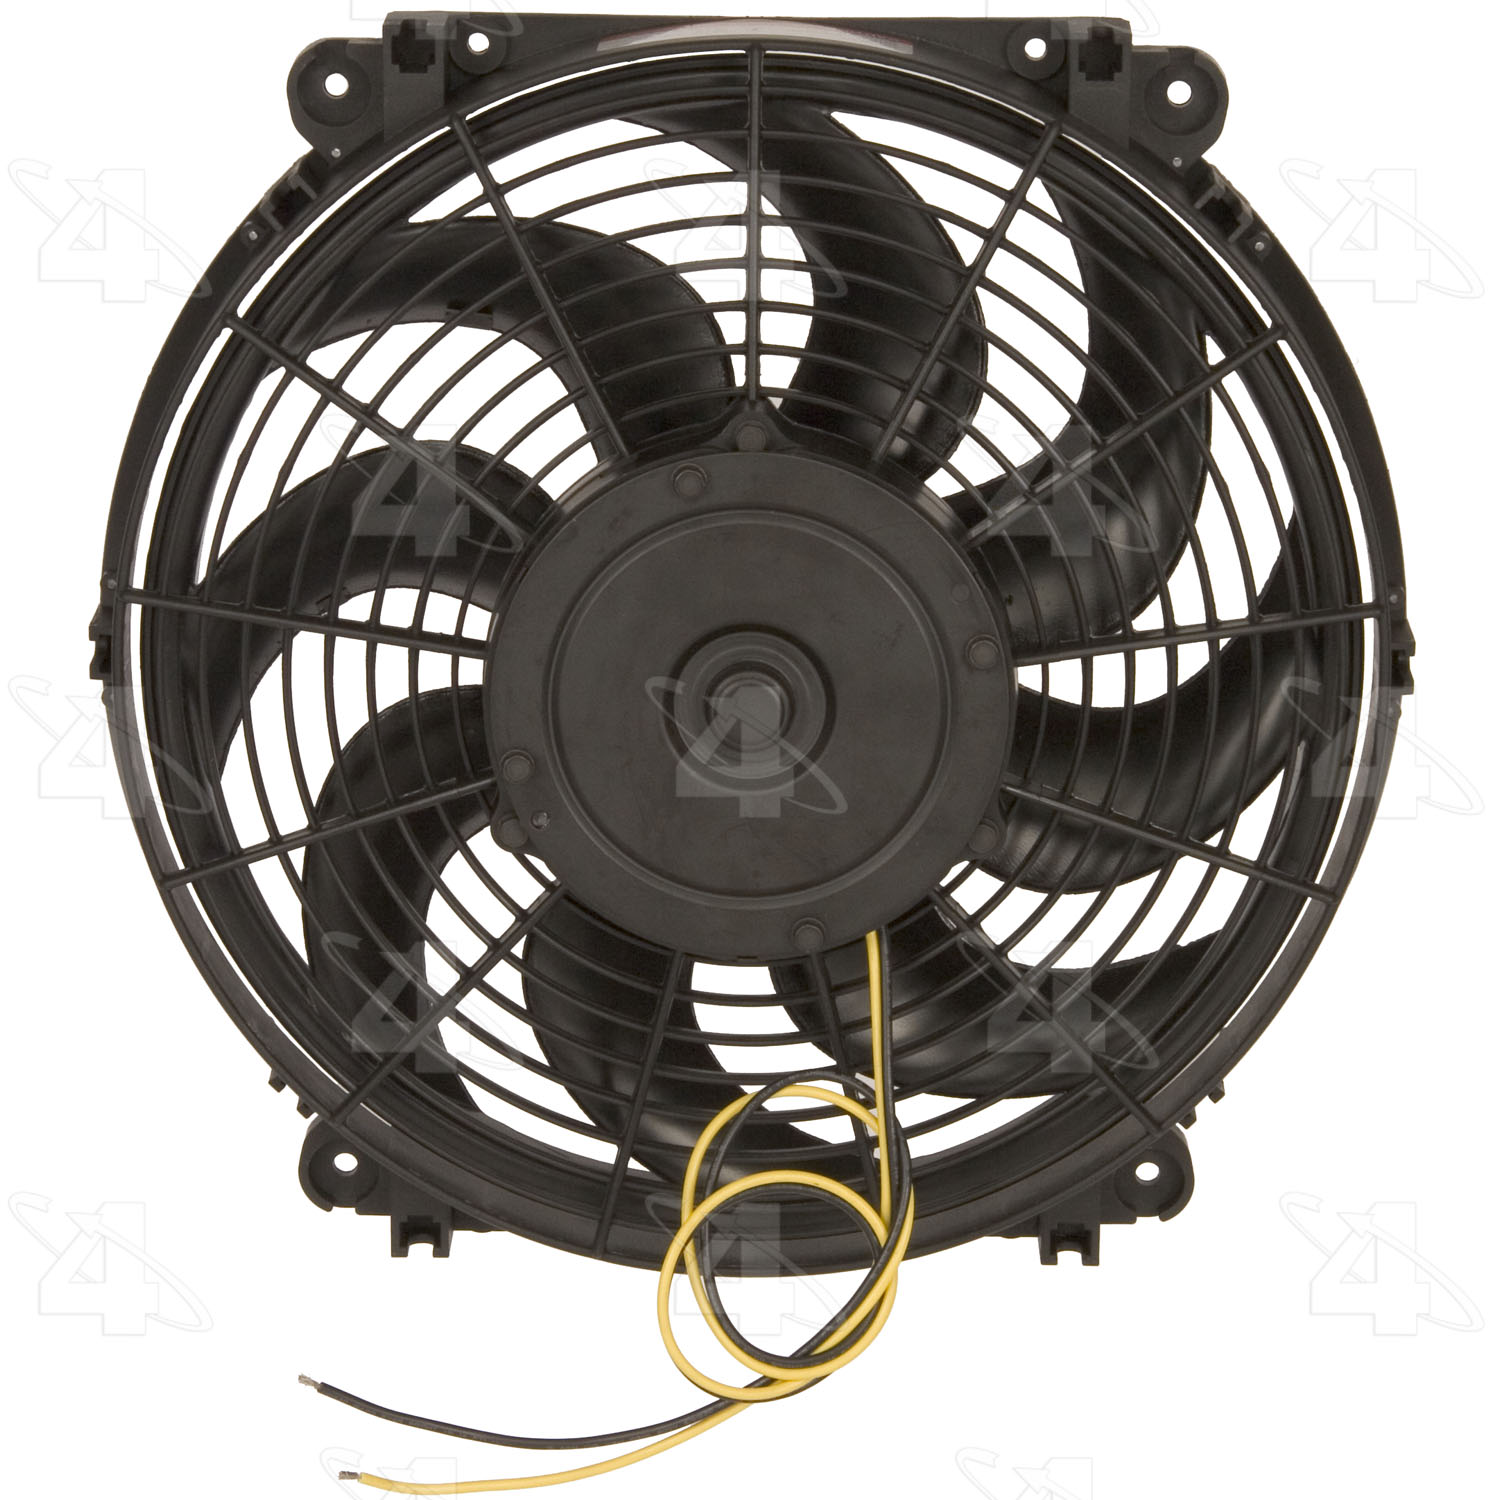 Four Seasons 36897 Engine Cooling Fan Fits 1981-1993 Dodge D250